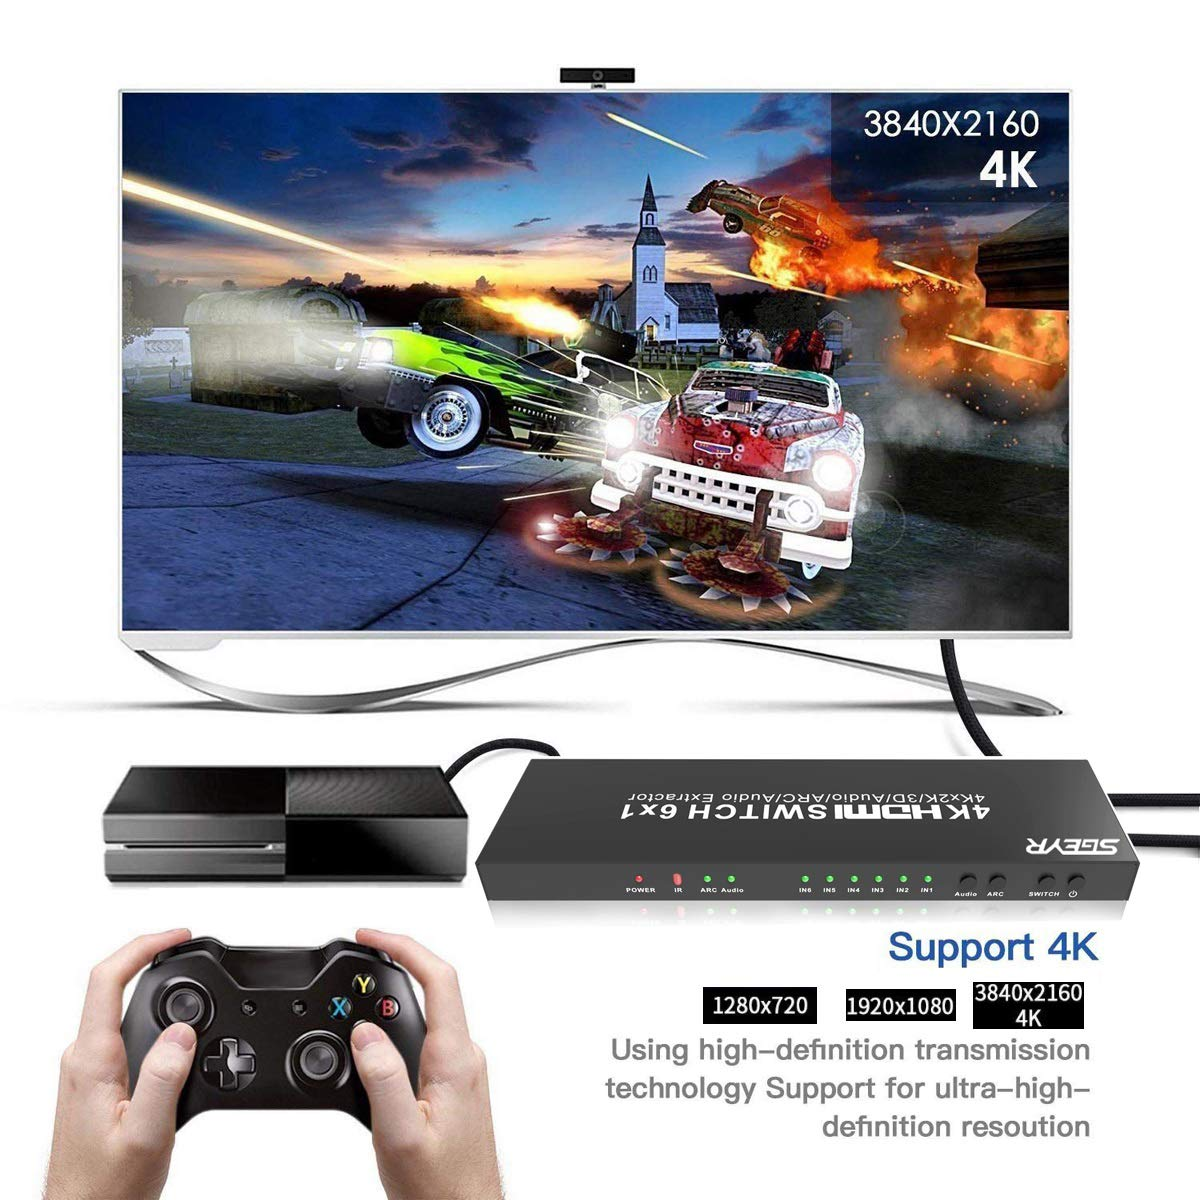 Sgeyr 6x1 Hdmi Switch 14v Switcher 6 Port Amazonco Fuse Xbox 360 Amazon Electronics